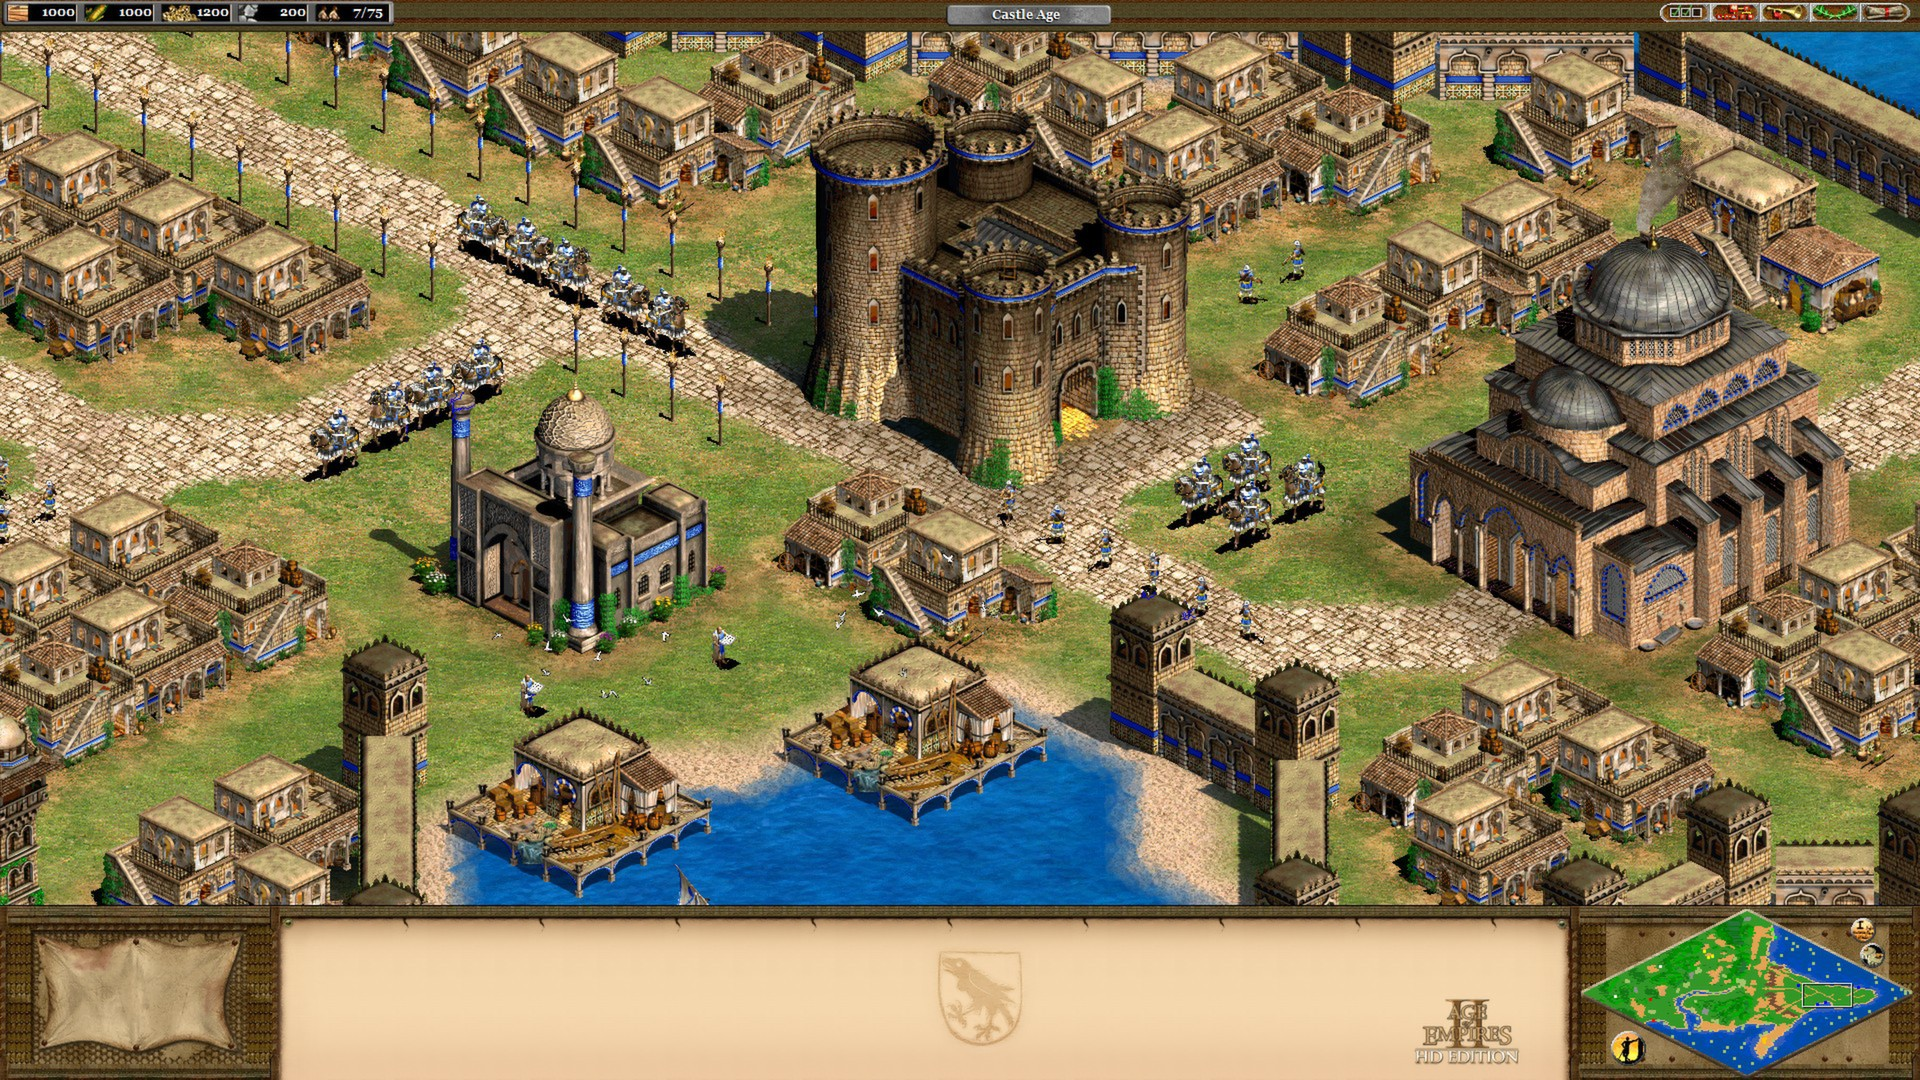 The Age of Empires series developed by Ensemble is a classic 4X game and one of the finest strategy games ever made.